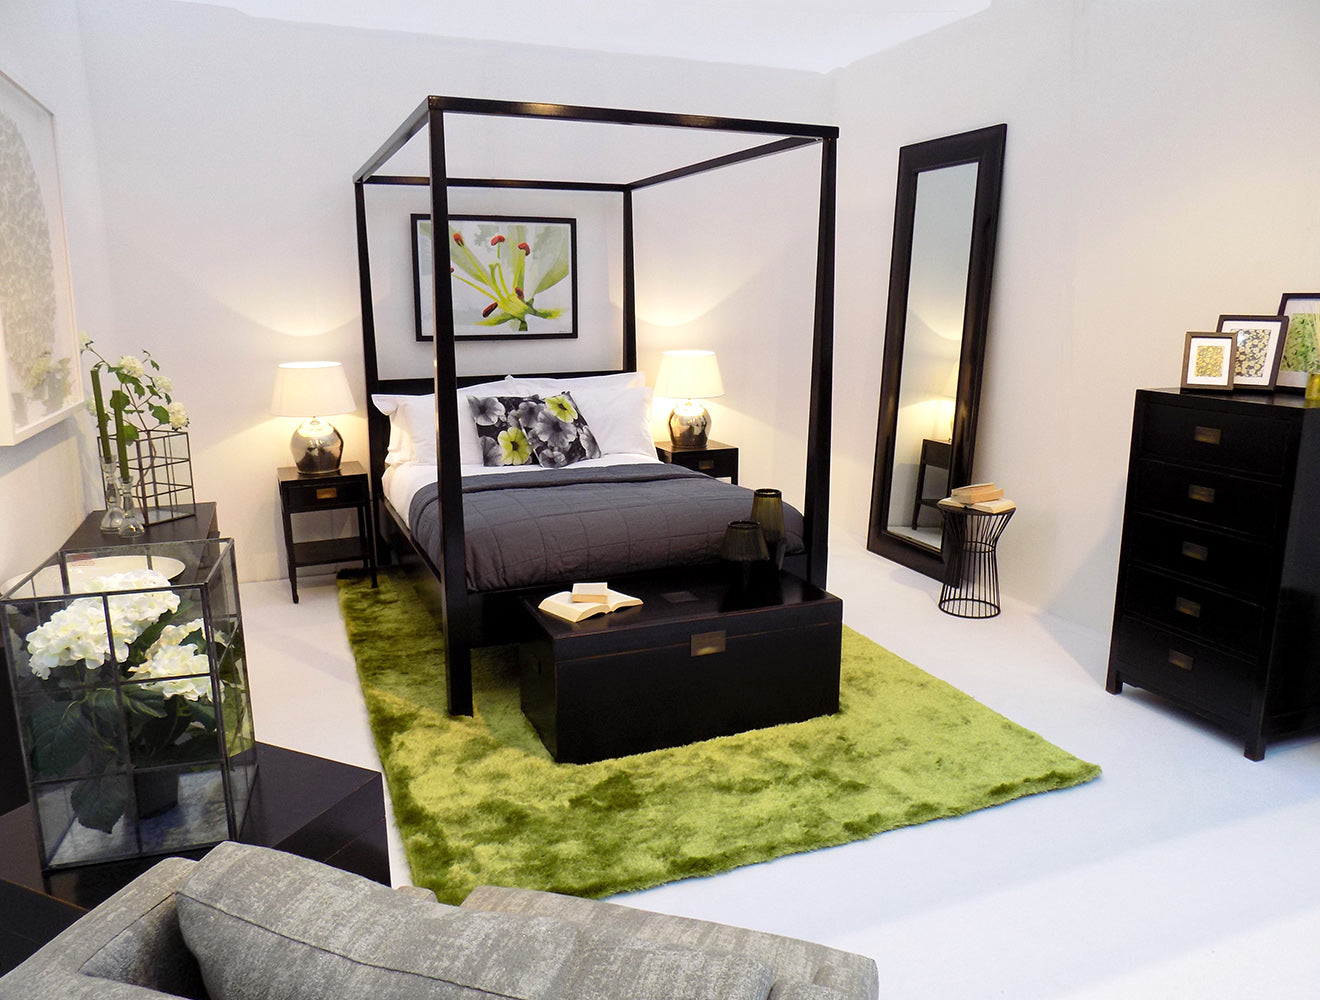 Minimalist summer bedroom with green rug, black furniture and white walls